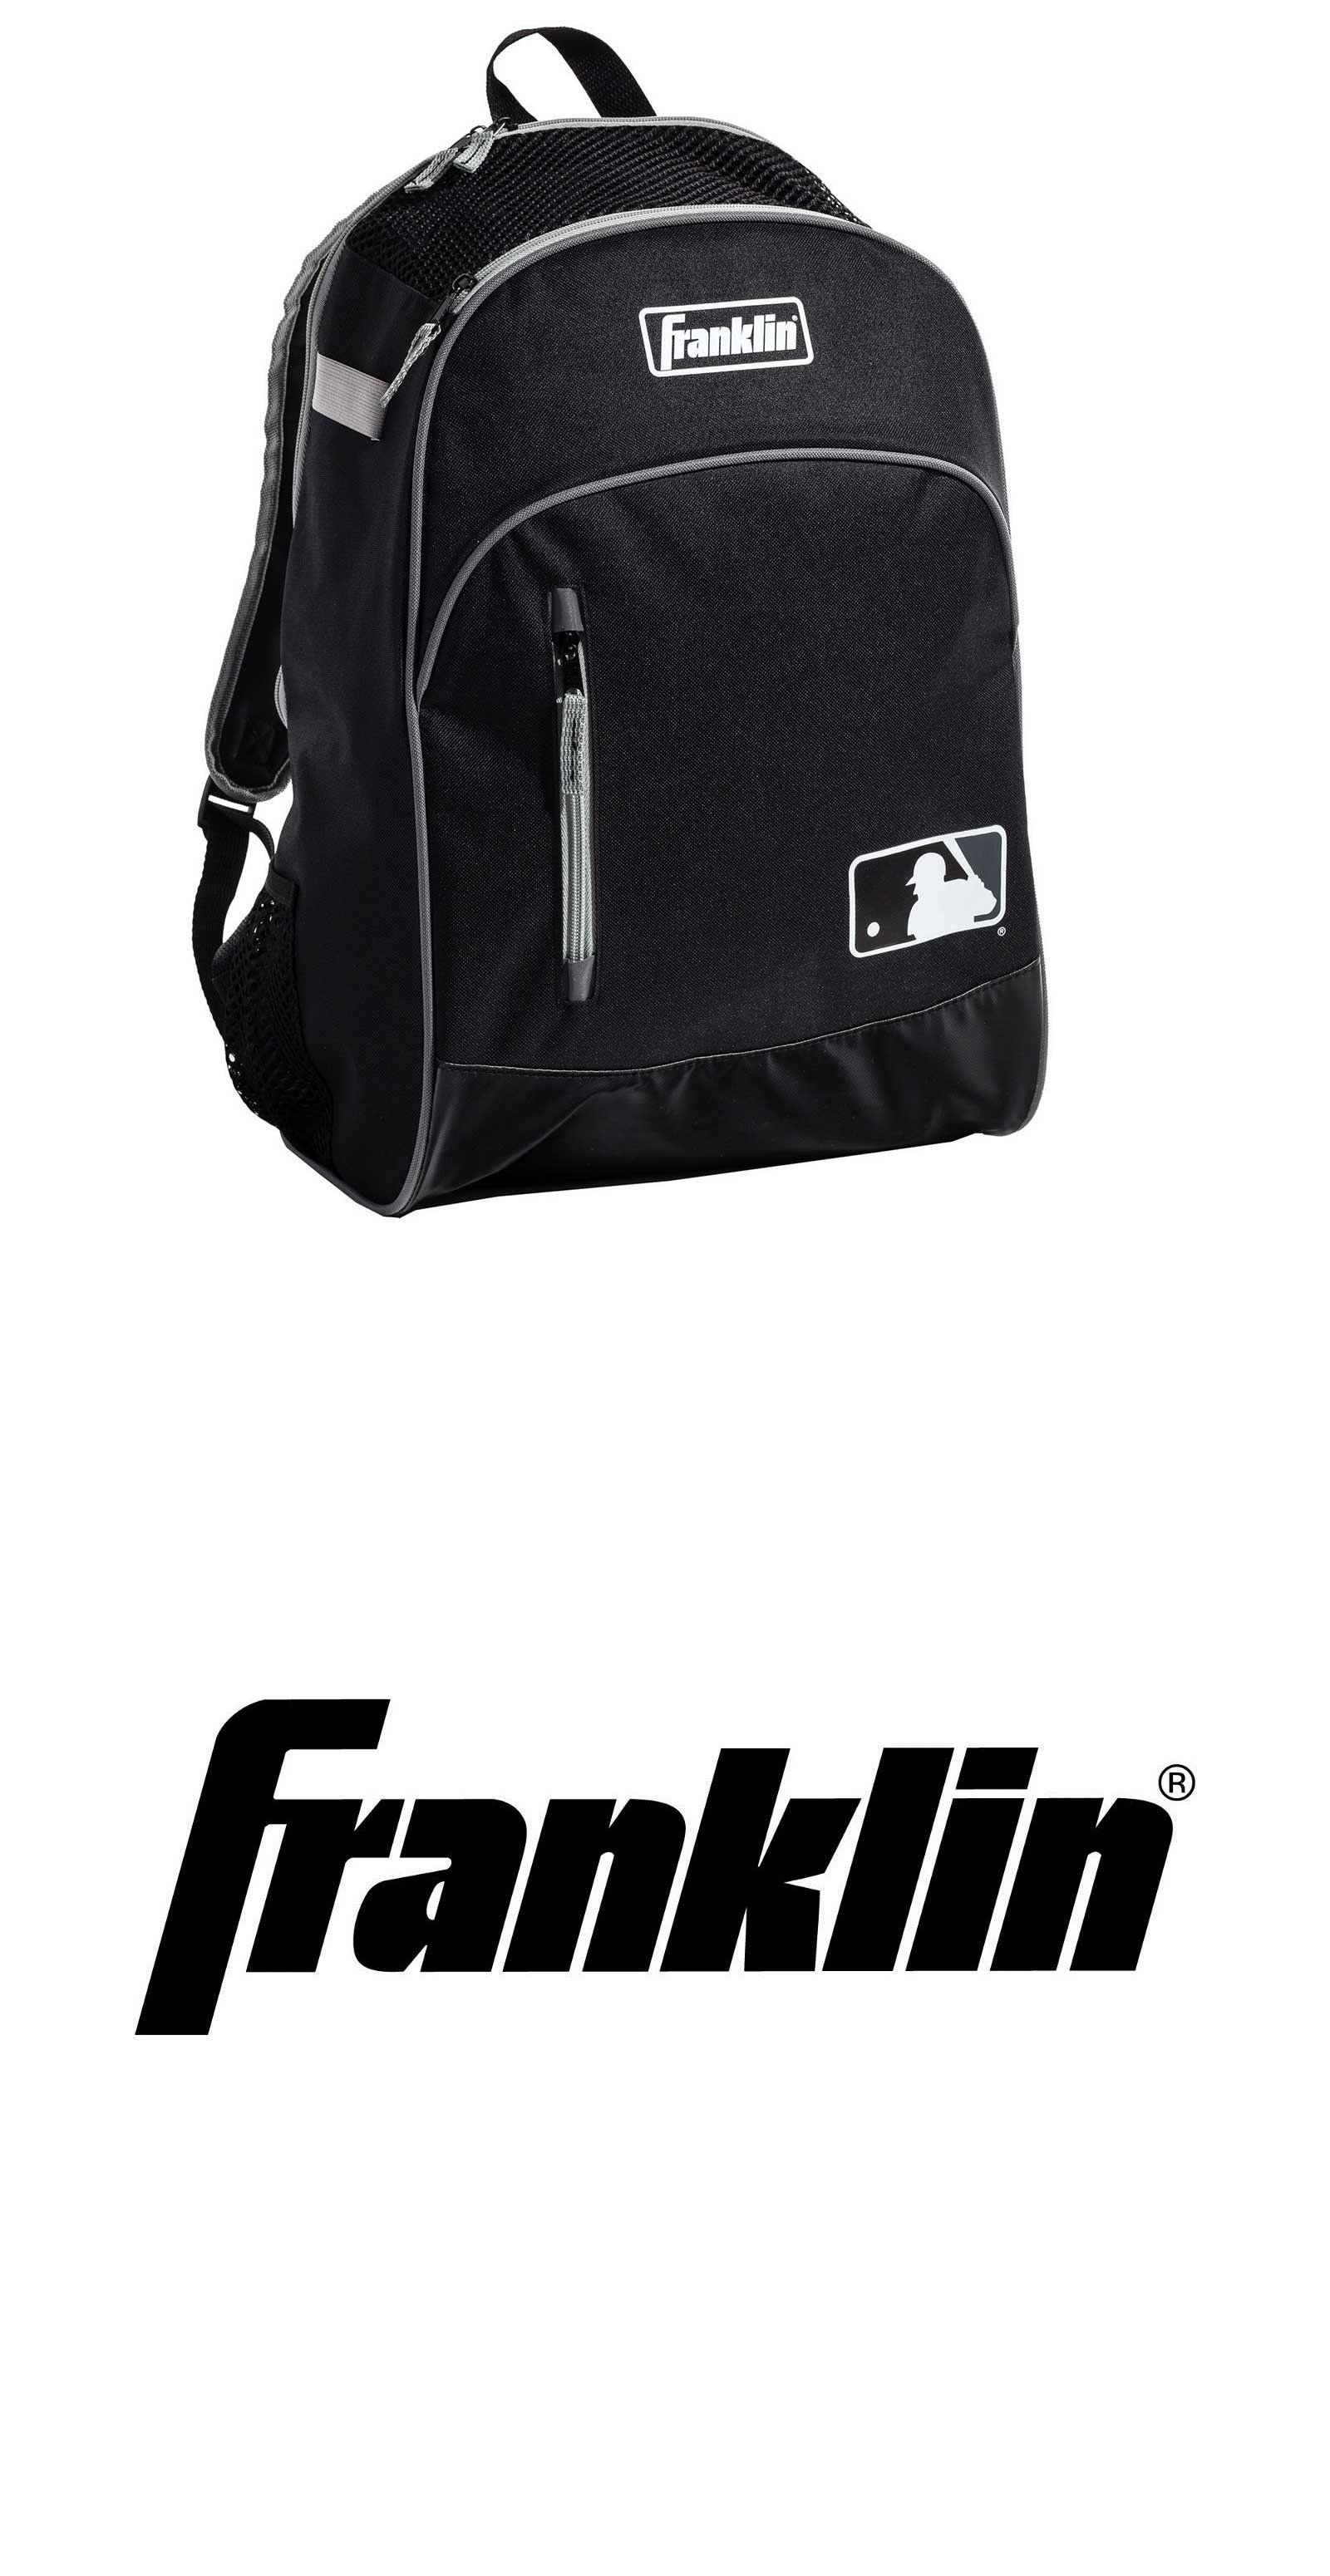 Equipment Care And Accessories 181324 Mlb Youth Baseball Softball Batpack Bag Free Shipping Bat Backpack It Now Only 18 99 On Ebay